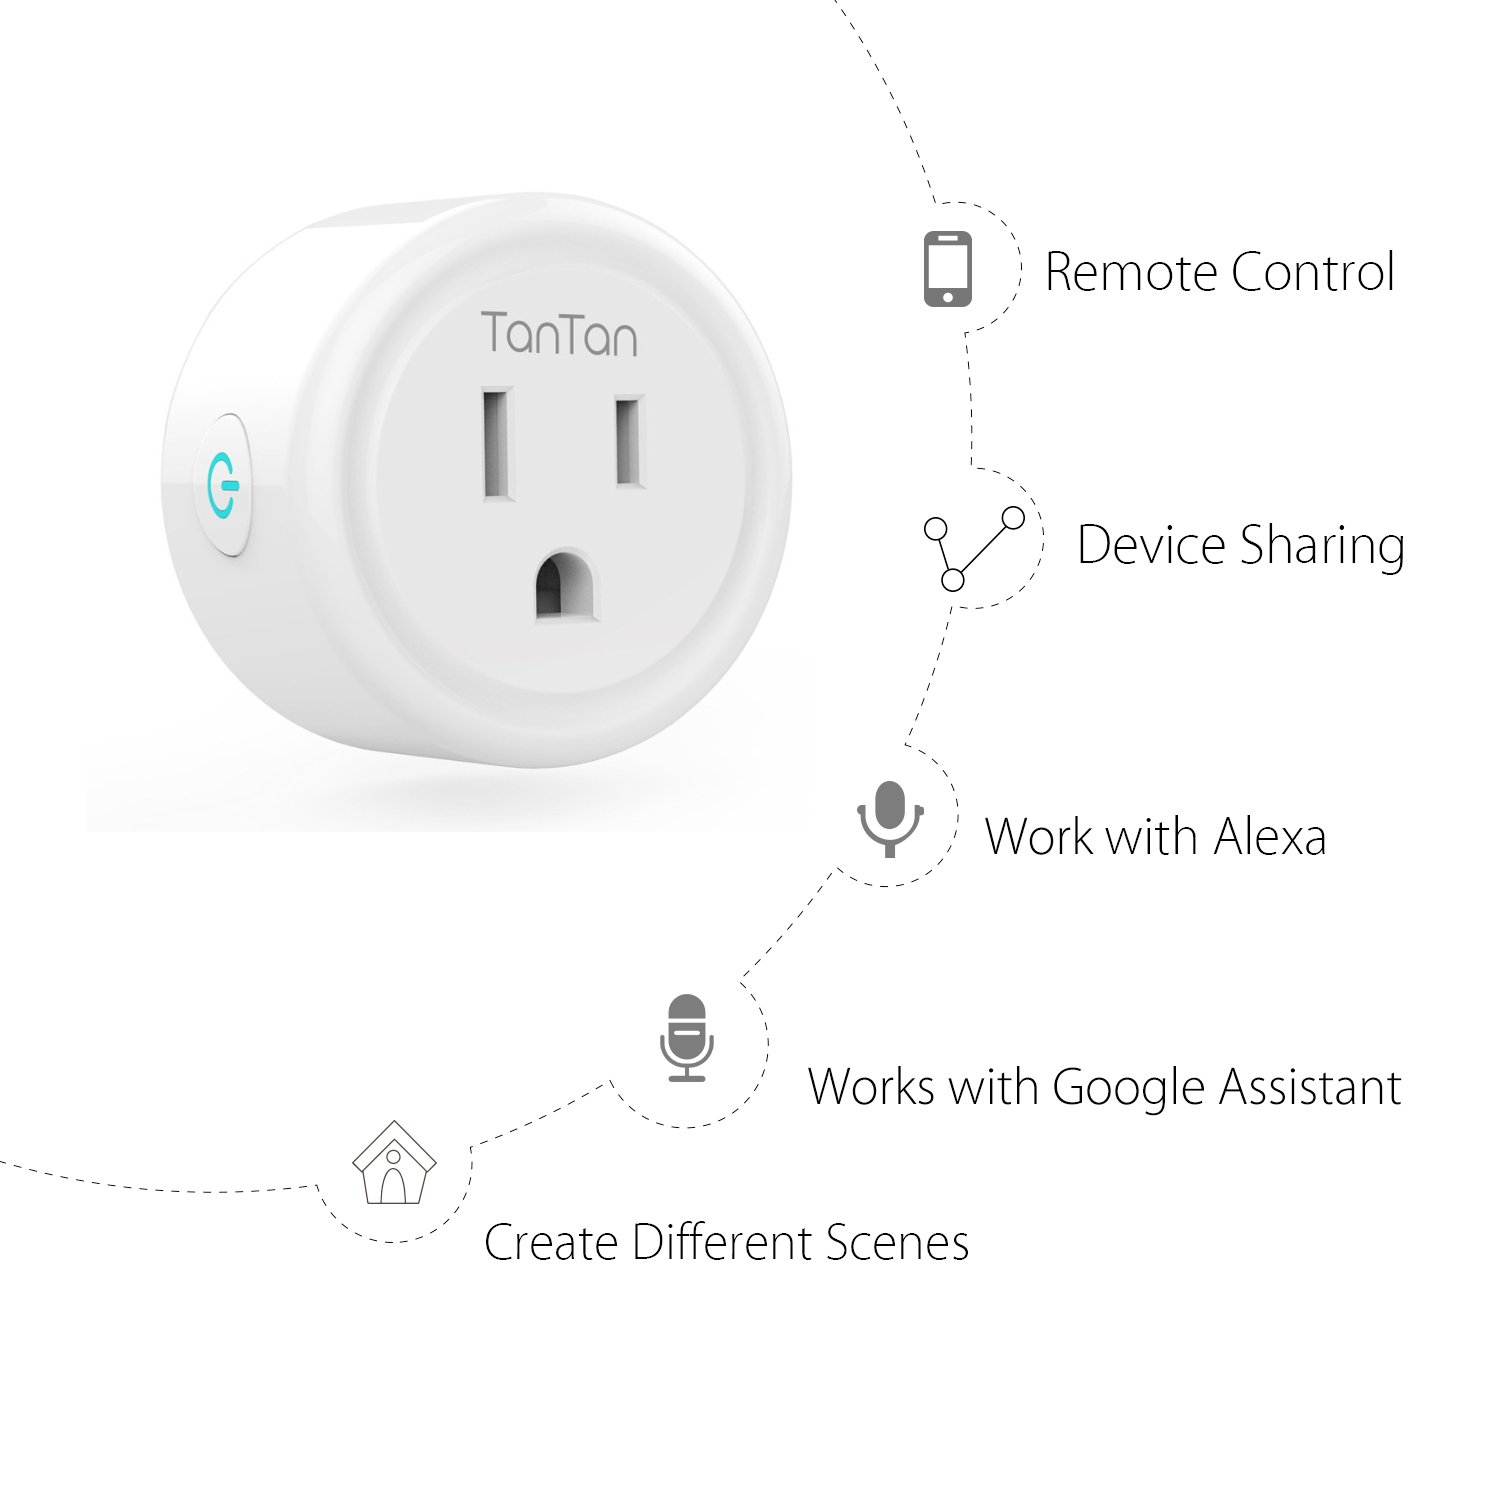 Smart Plug TanTan Wi-Fi Wireless Mini Socket Outlet Works with Amazon Alexa and Google Home & IFTTT, No Hub Required, Remote Control Your Devices from Anywhere, ETL Listed [Upgraded Version] by TanTan (Image #2)